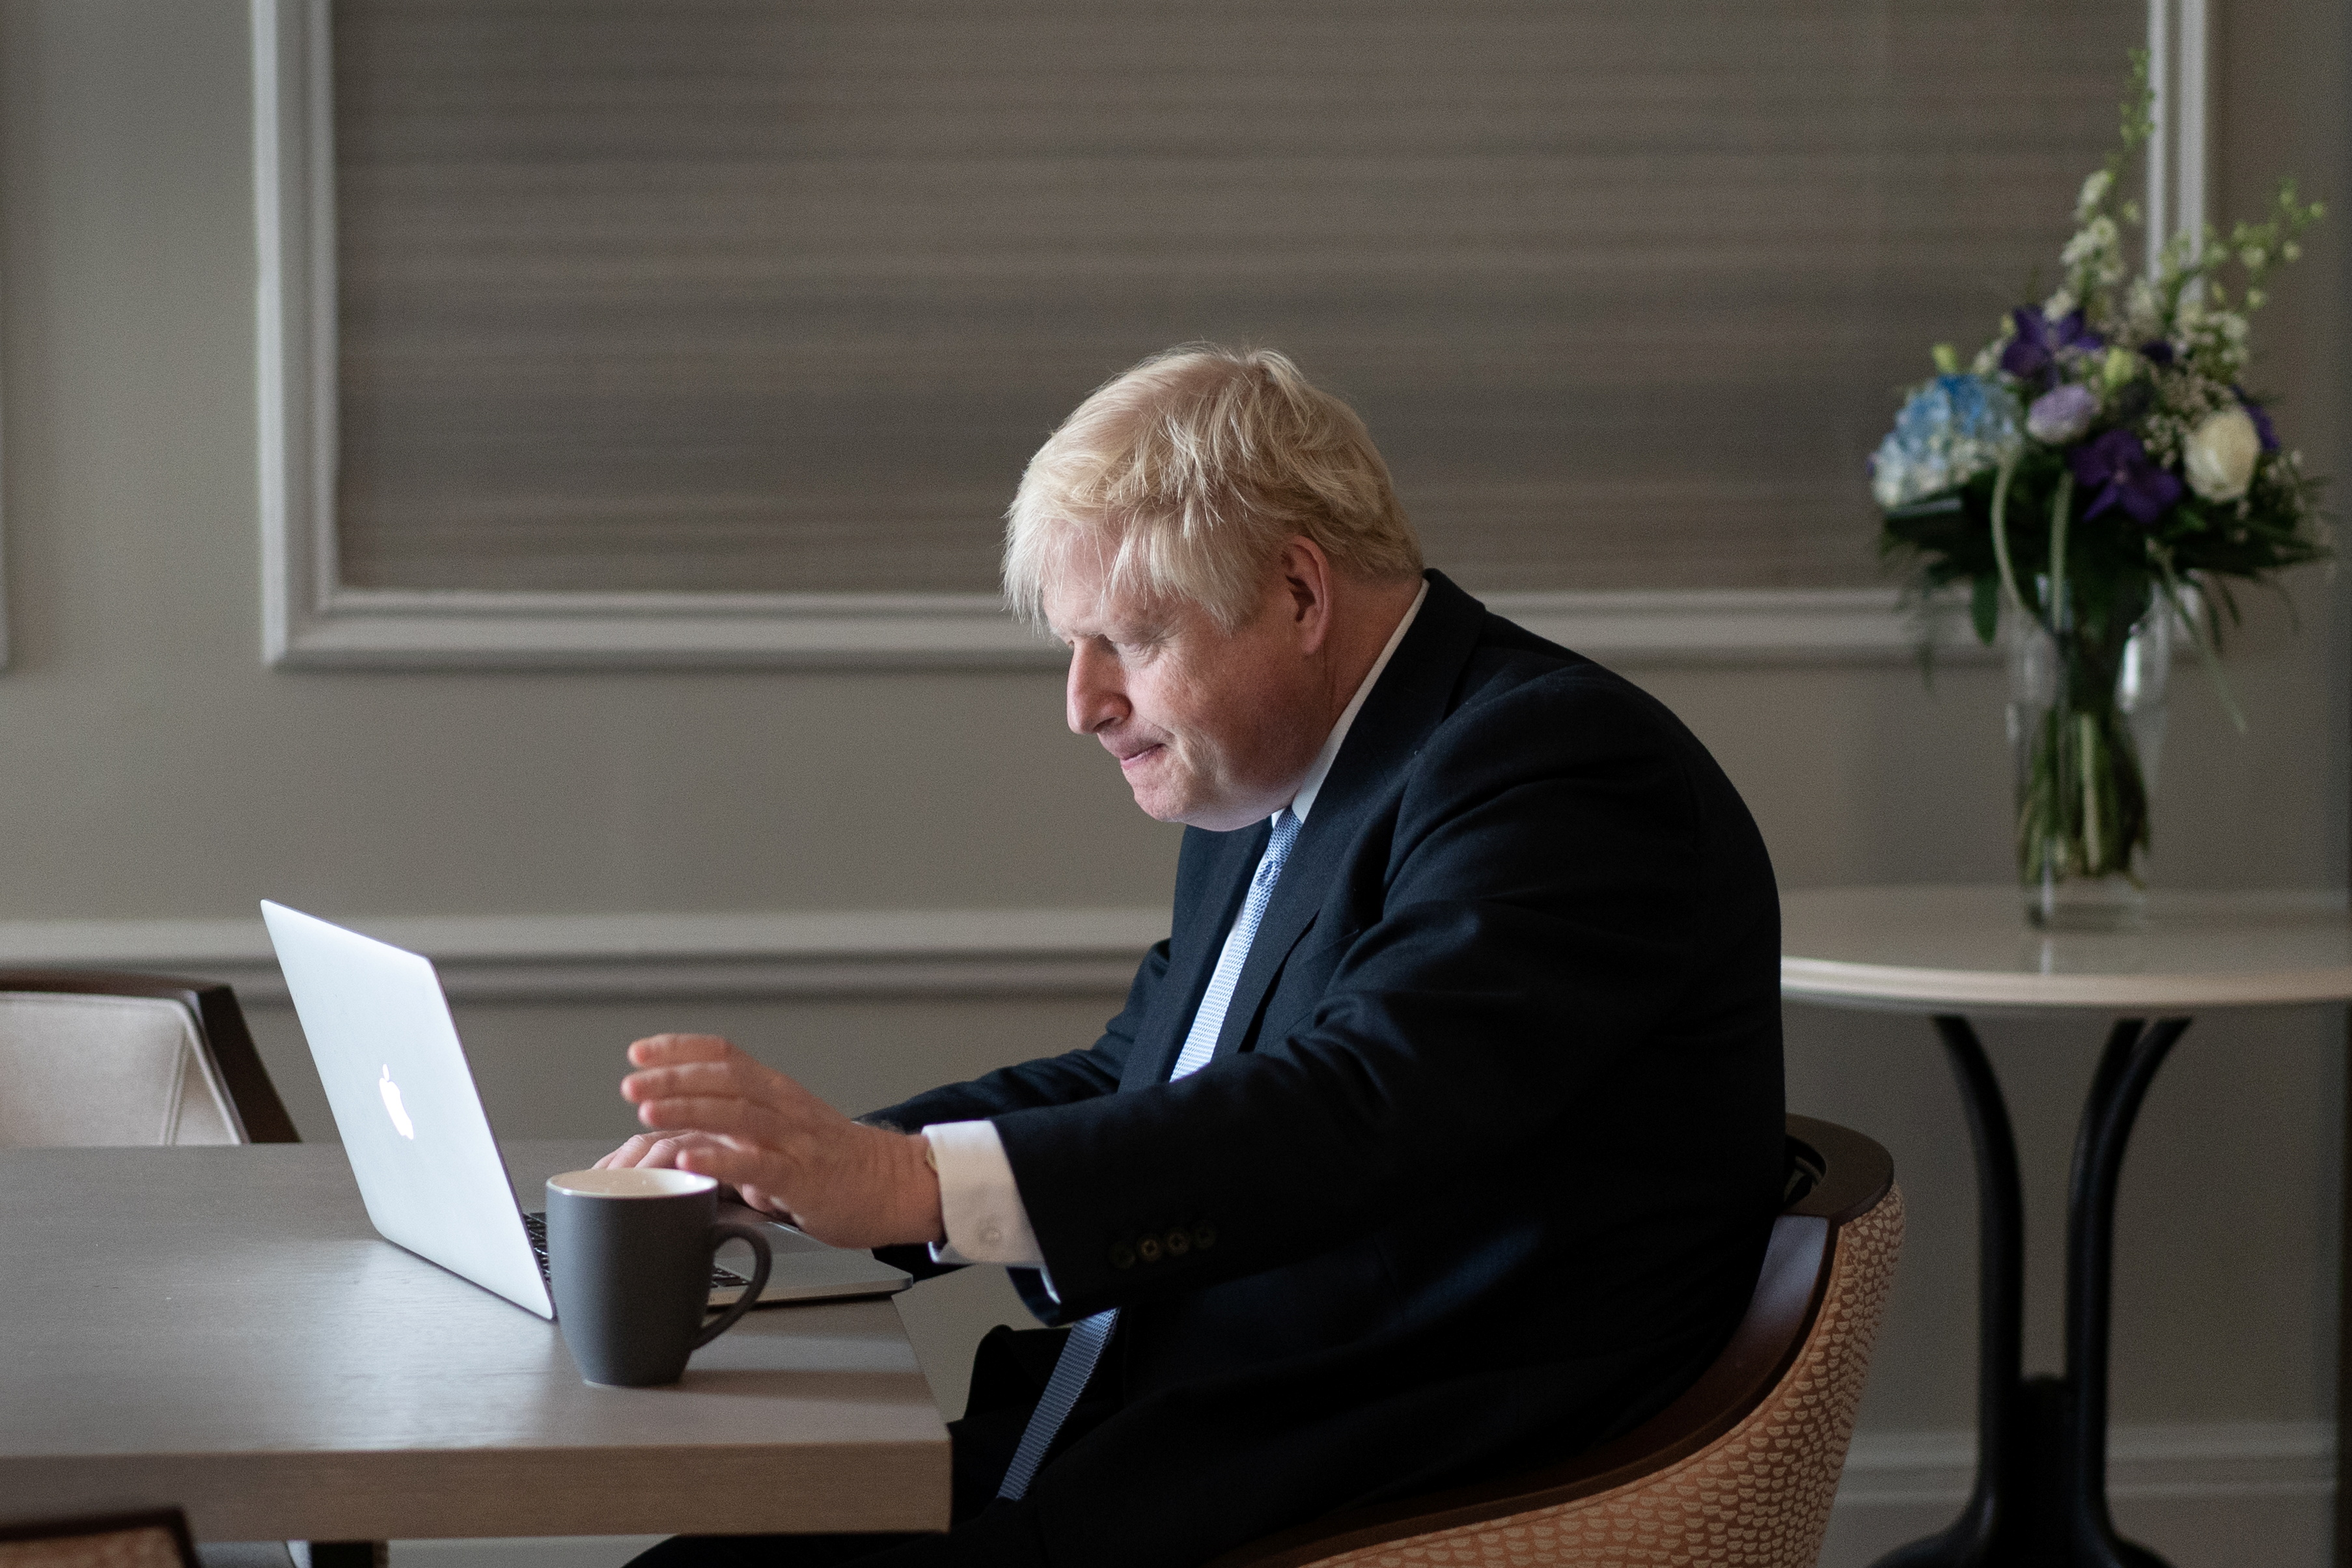 Britain's Prime Minister Boris Johnson prepares his keynote speech in his hotel room before addressing the Conservative Party Conference the following day, in Manchester, Britain October 5, 2021. Stefan Rousseau/Pool via REUTERS